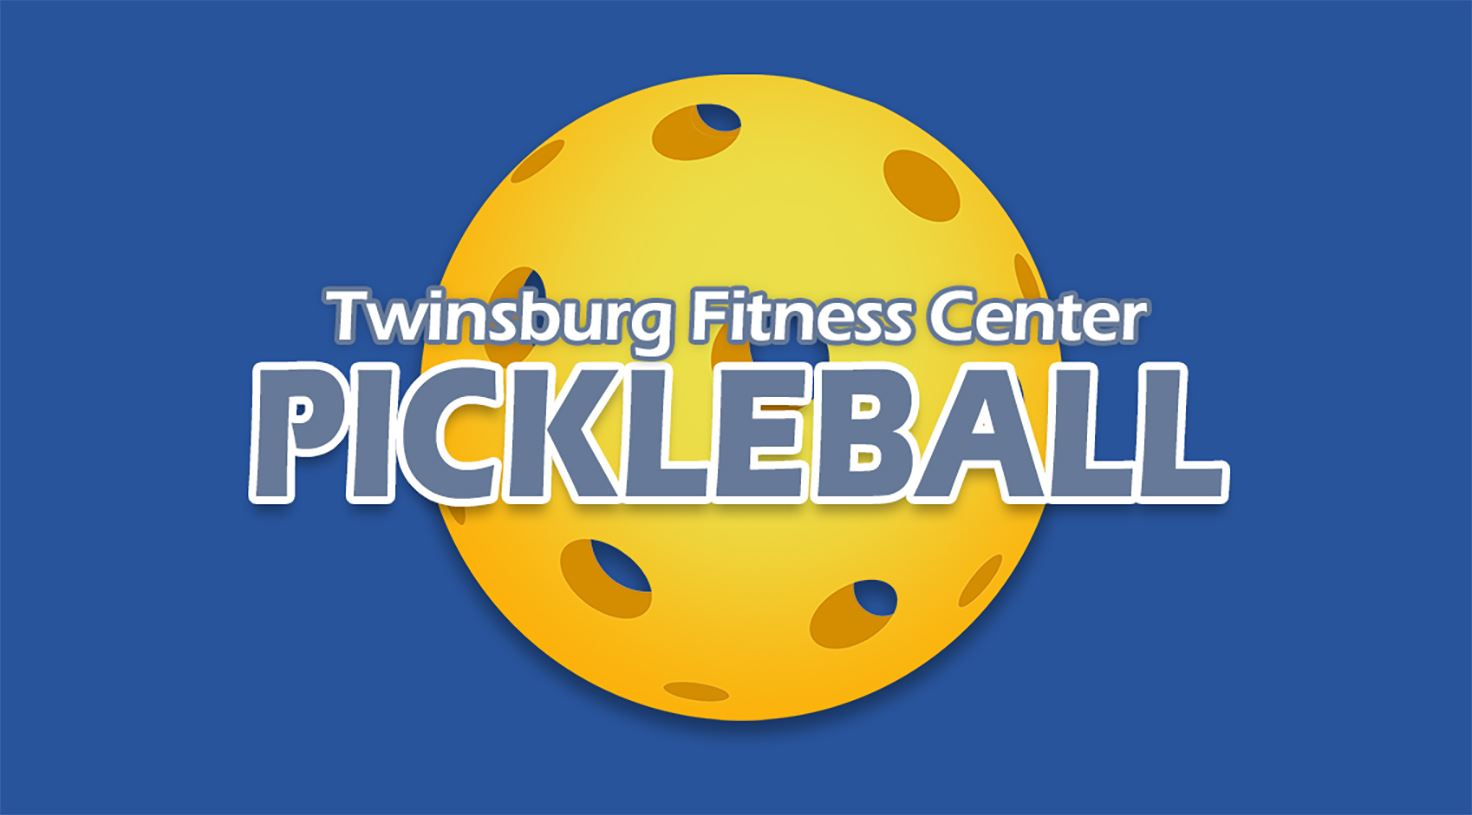 Pickleball is now available at TFC! Free for members, $6 for nonmembers. Limited paddles available o